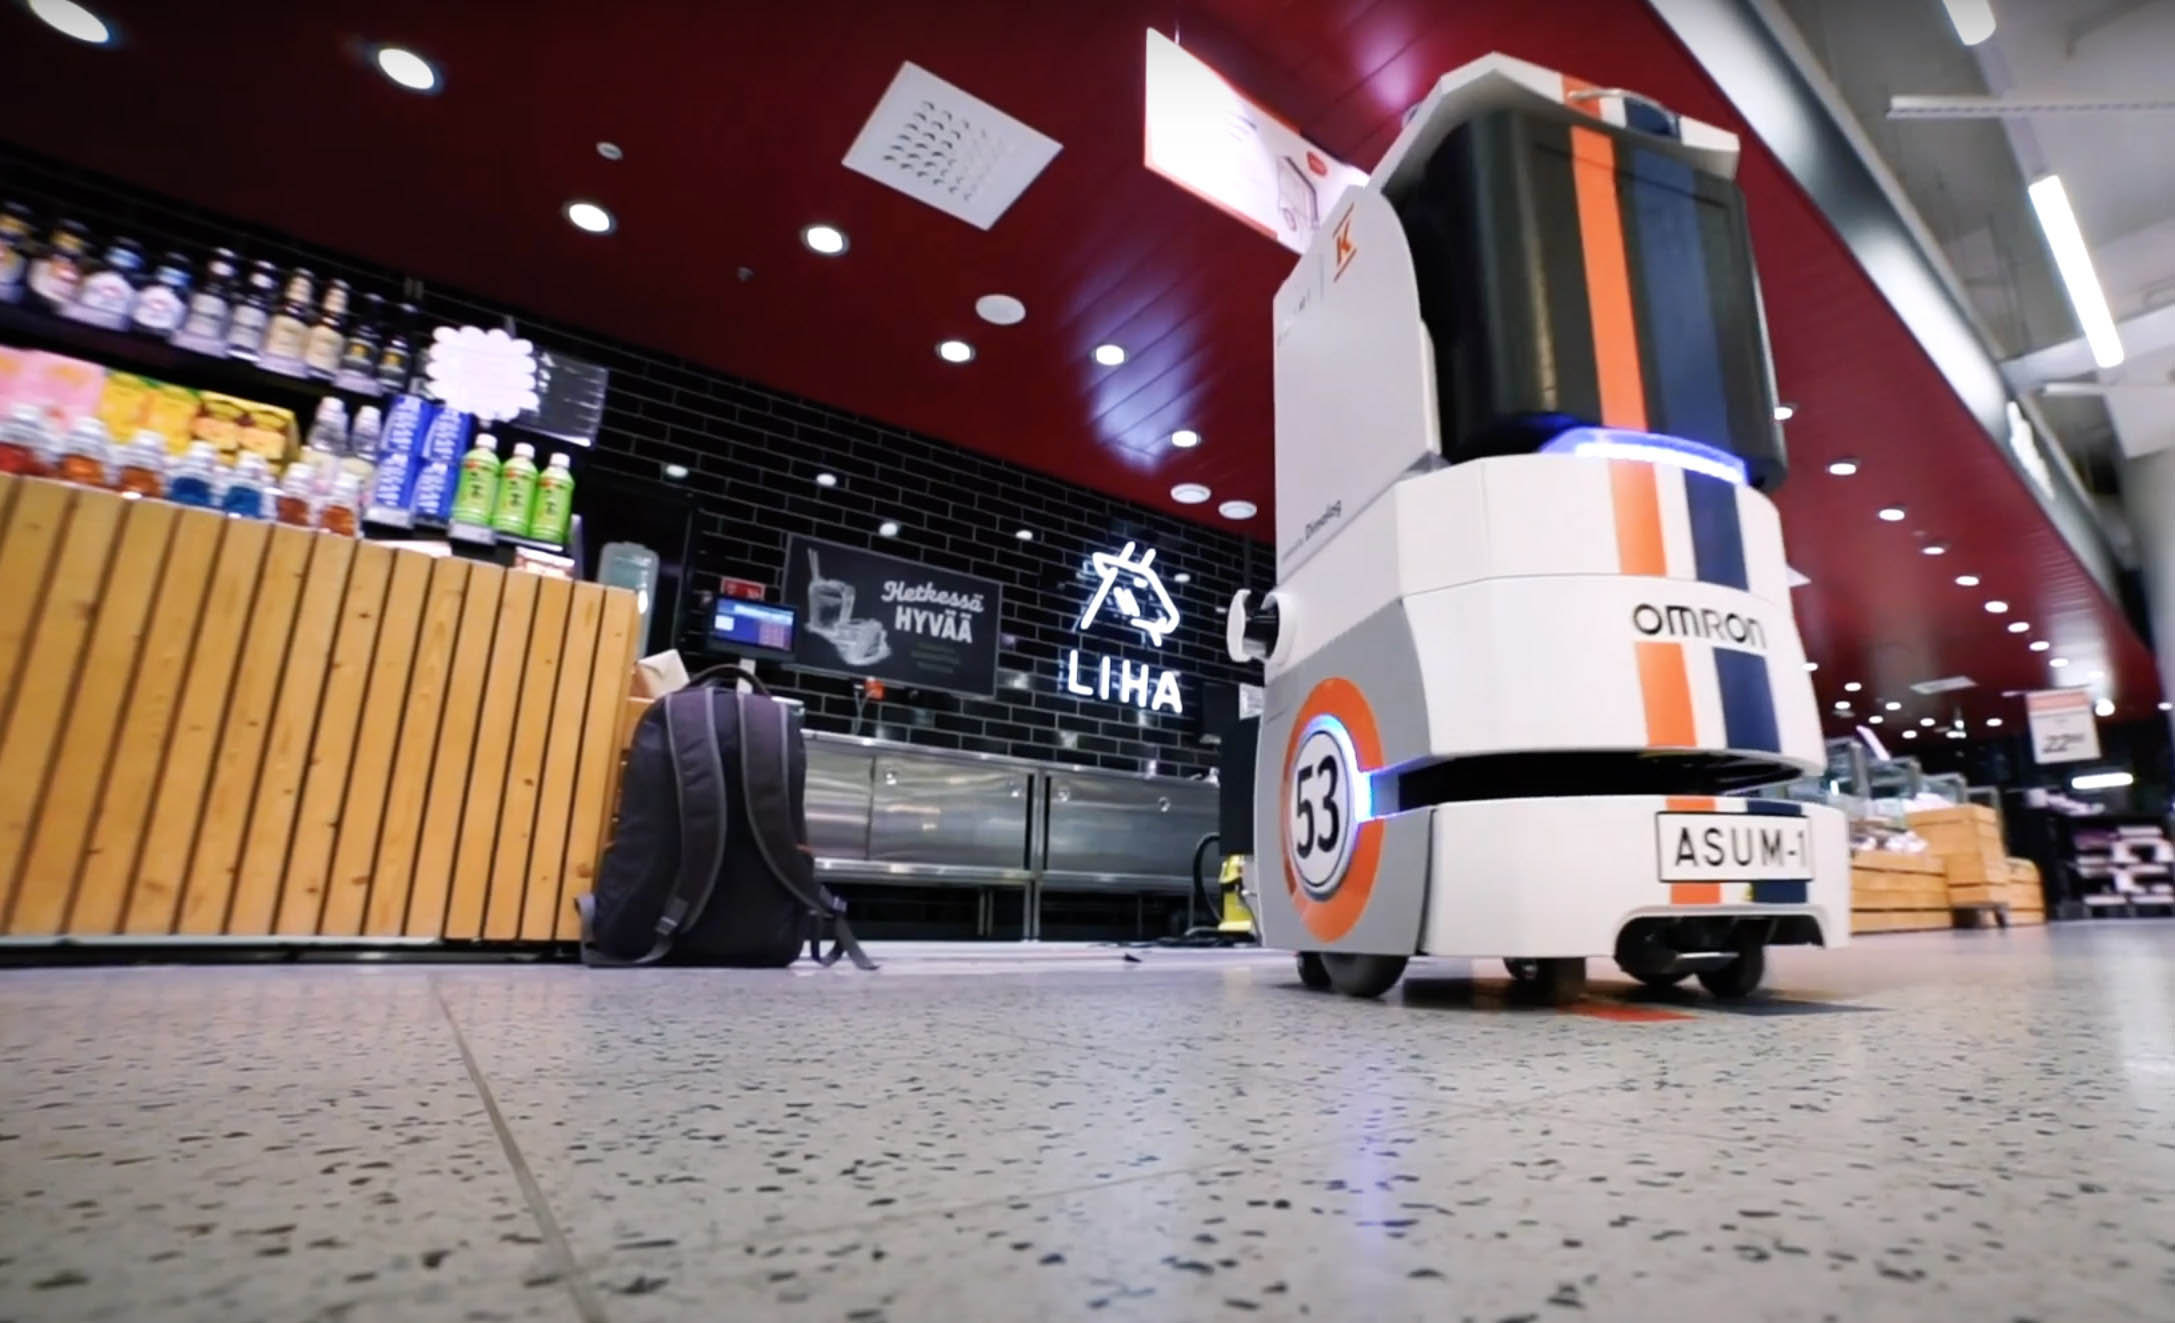 A small food delivery robot moving in a grocery store in REDI shopping centre